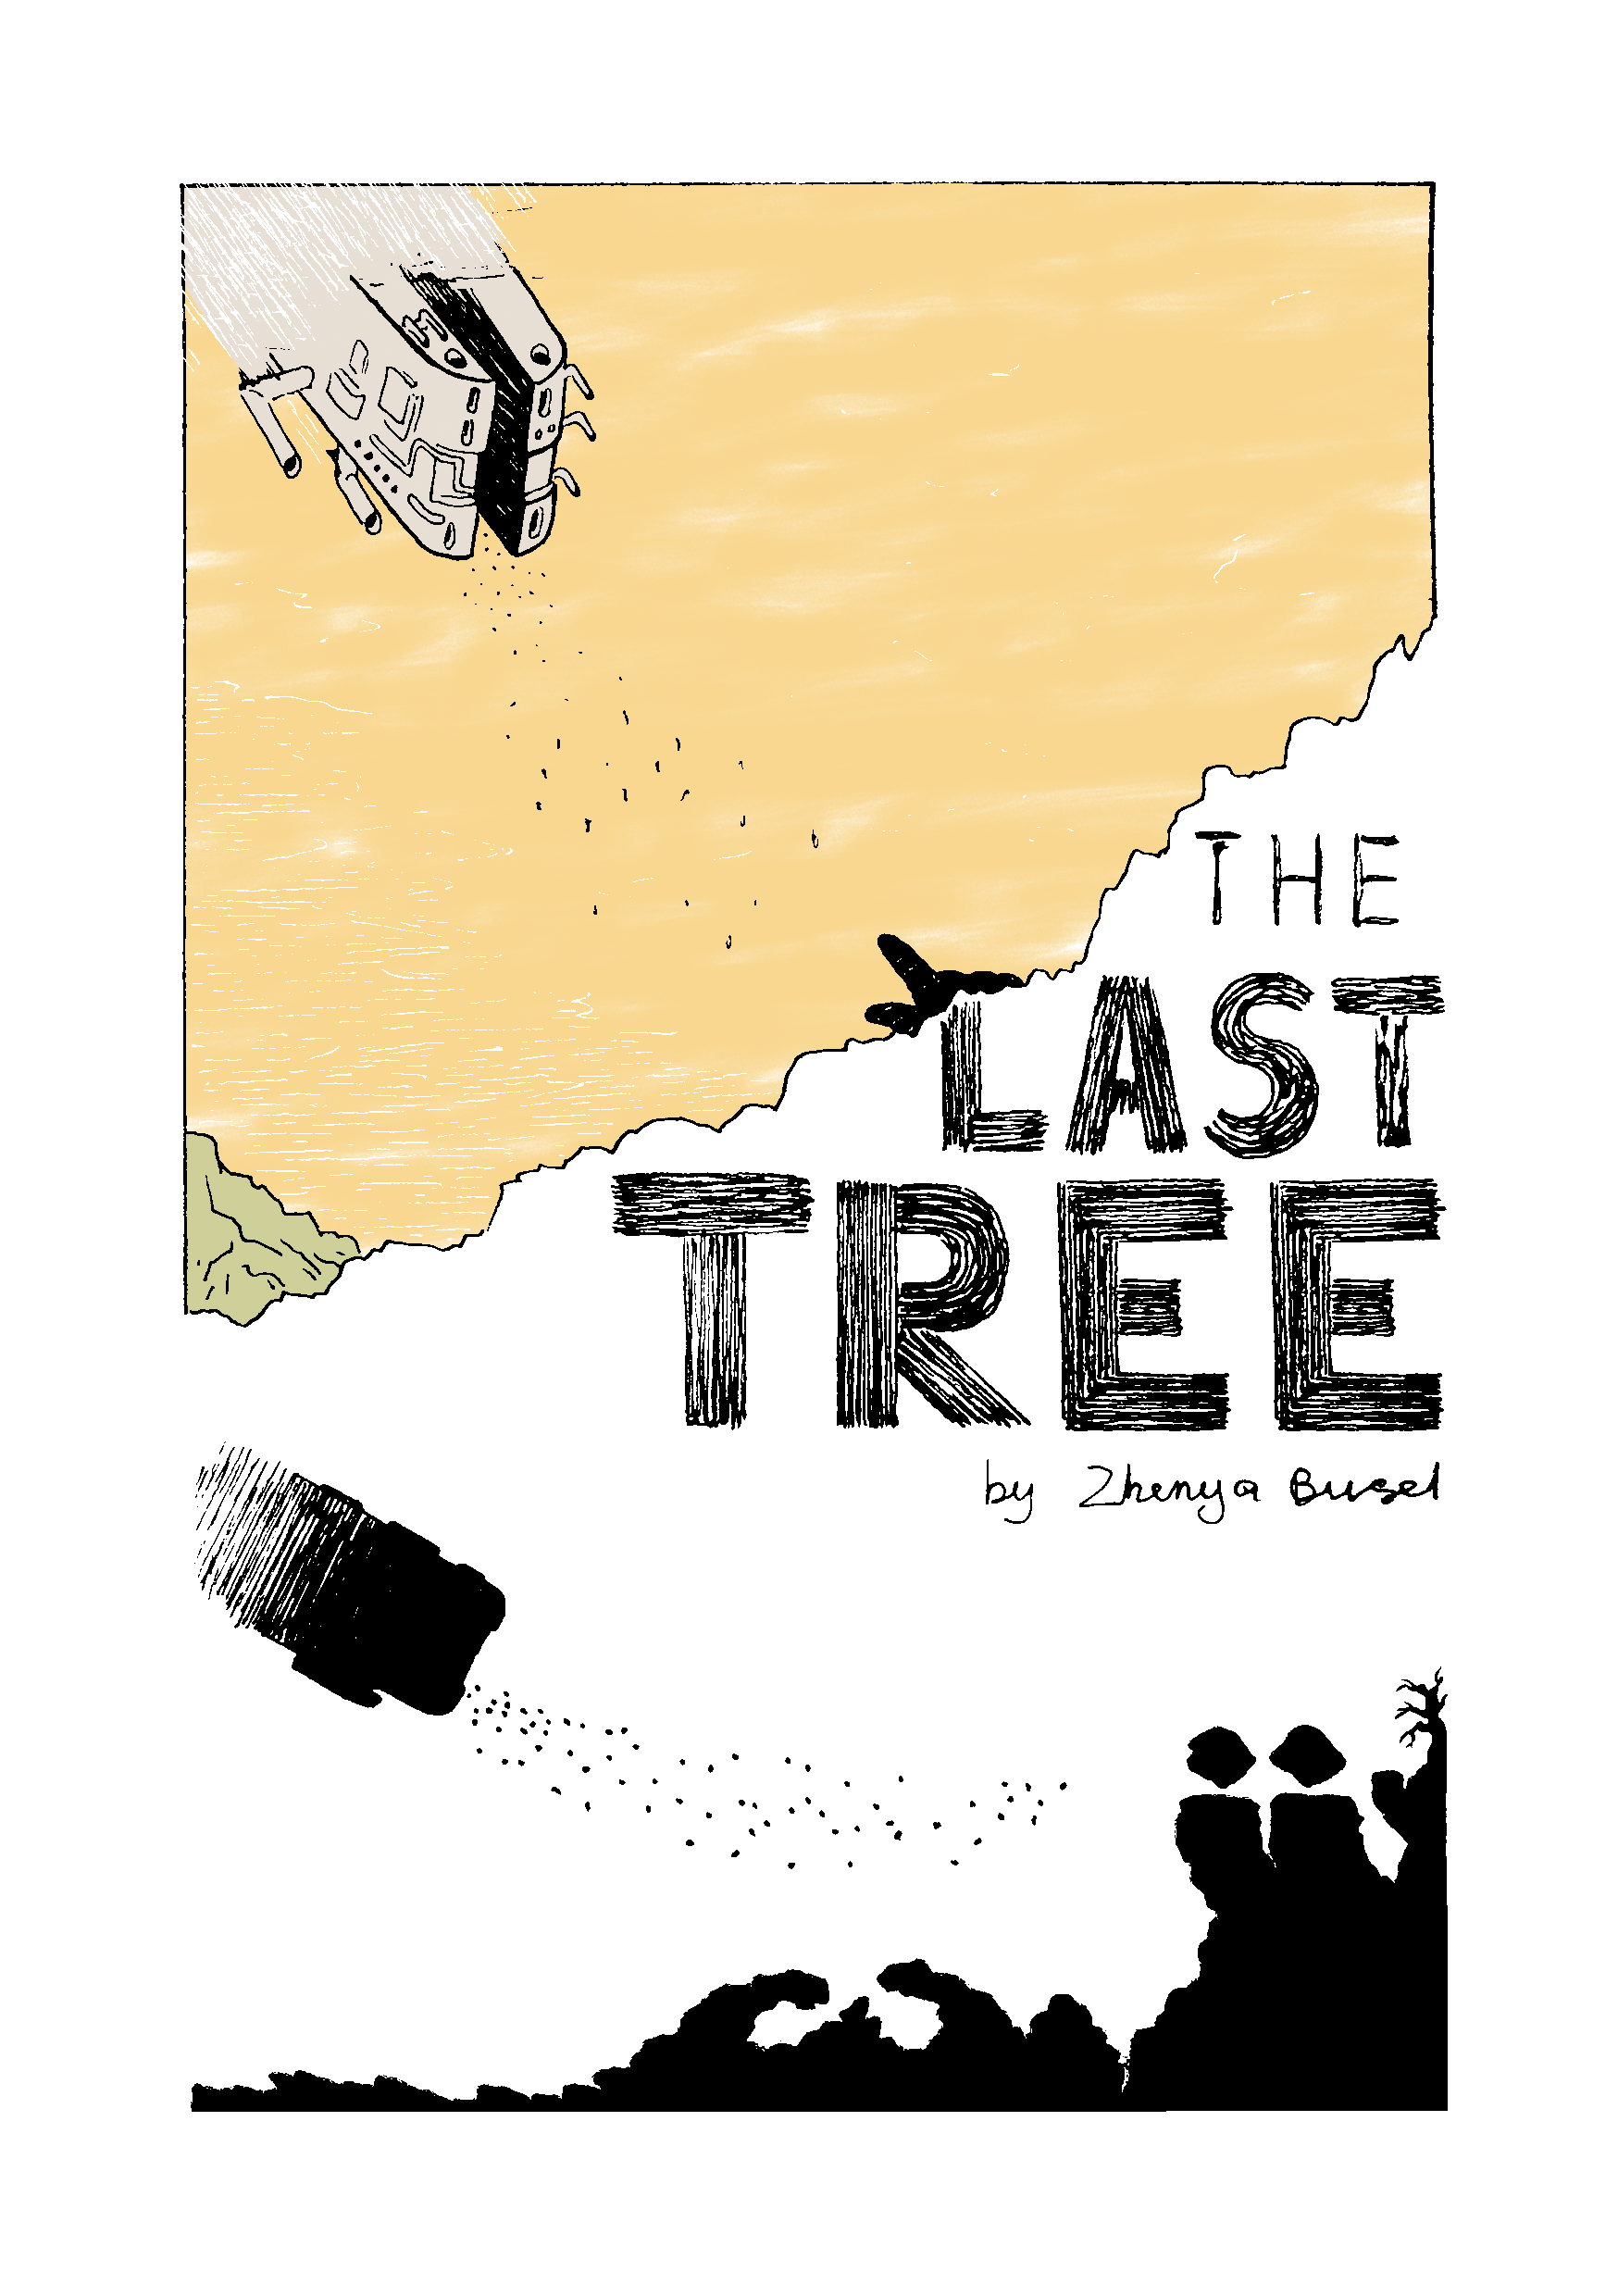 Yevgeny Busel - The Last Tree